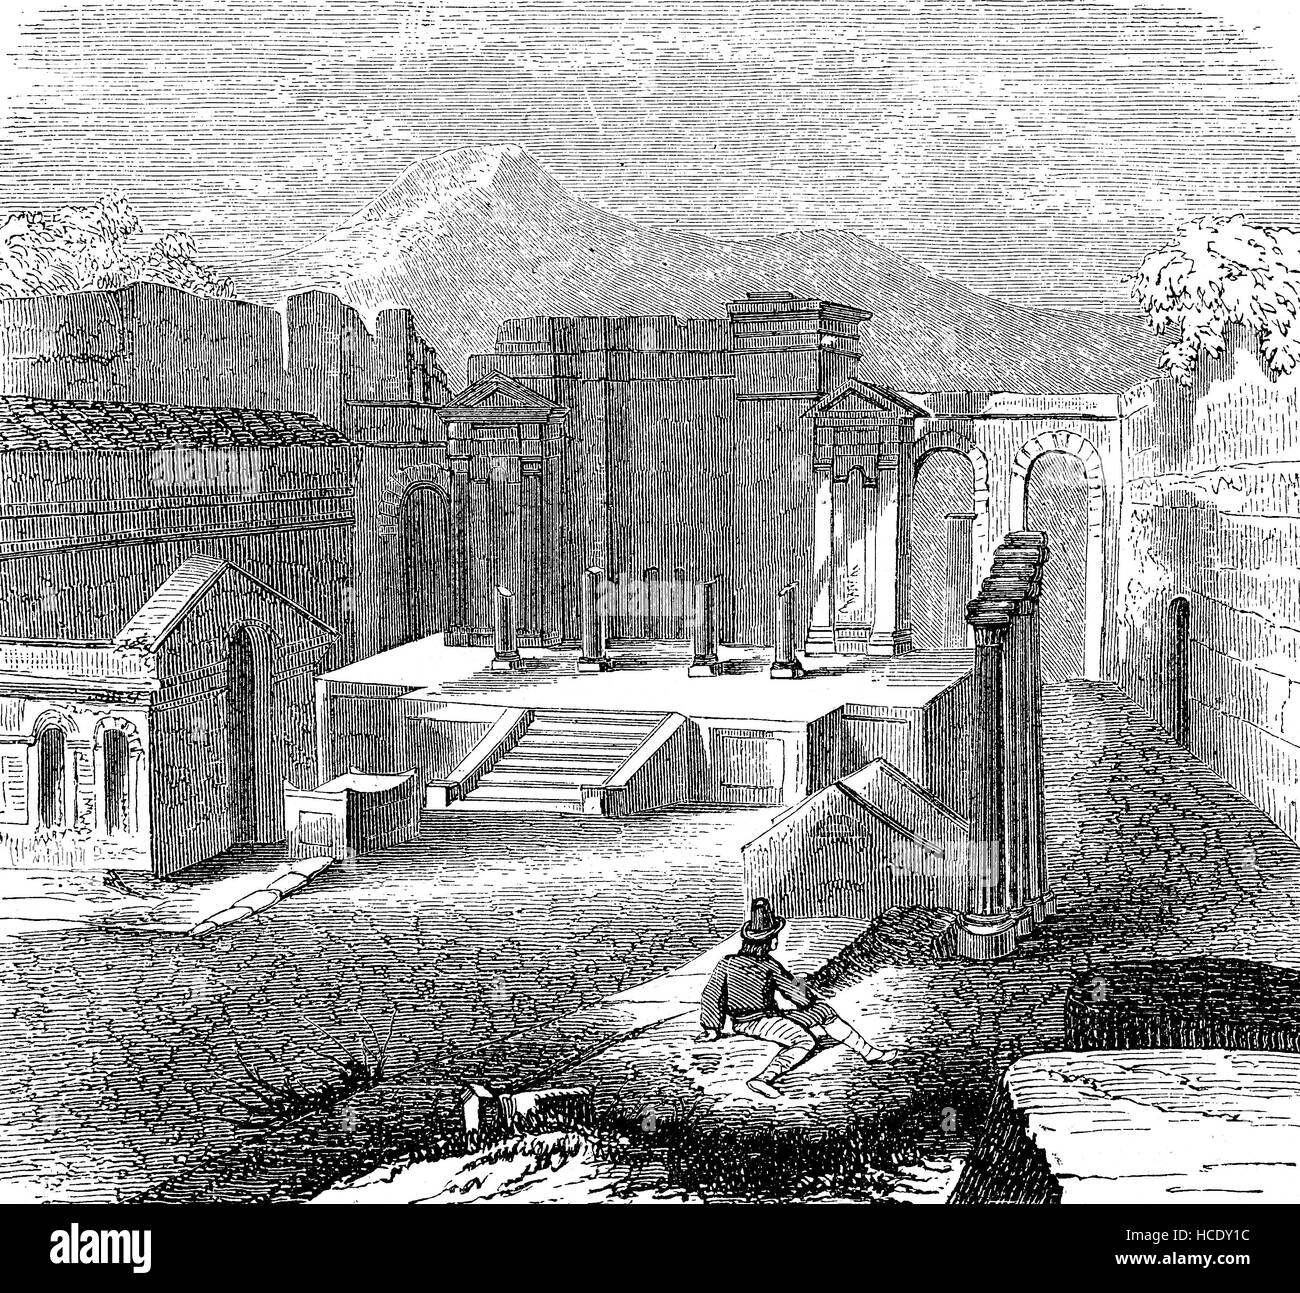 the remains of the temple of Isis at Pompeji, Pompey, Italy, the story of the ancient Rome, roman Empire - Stock Image